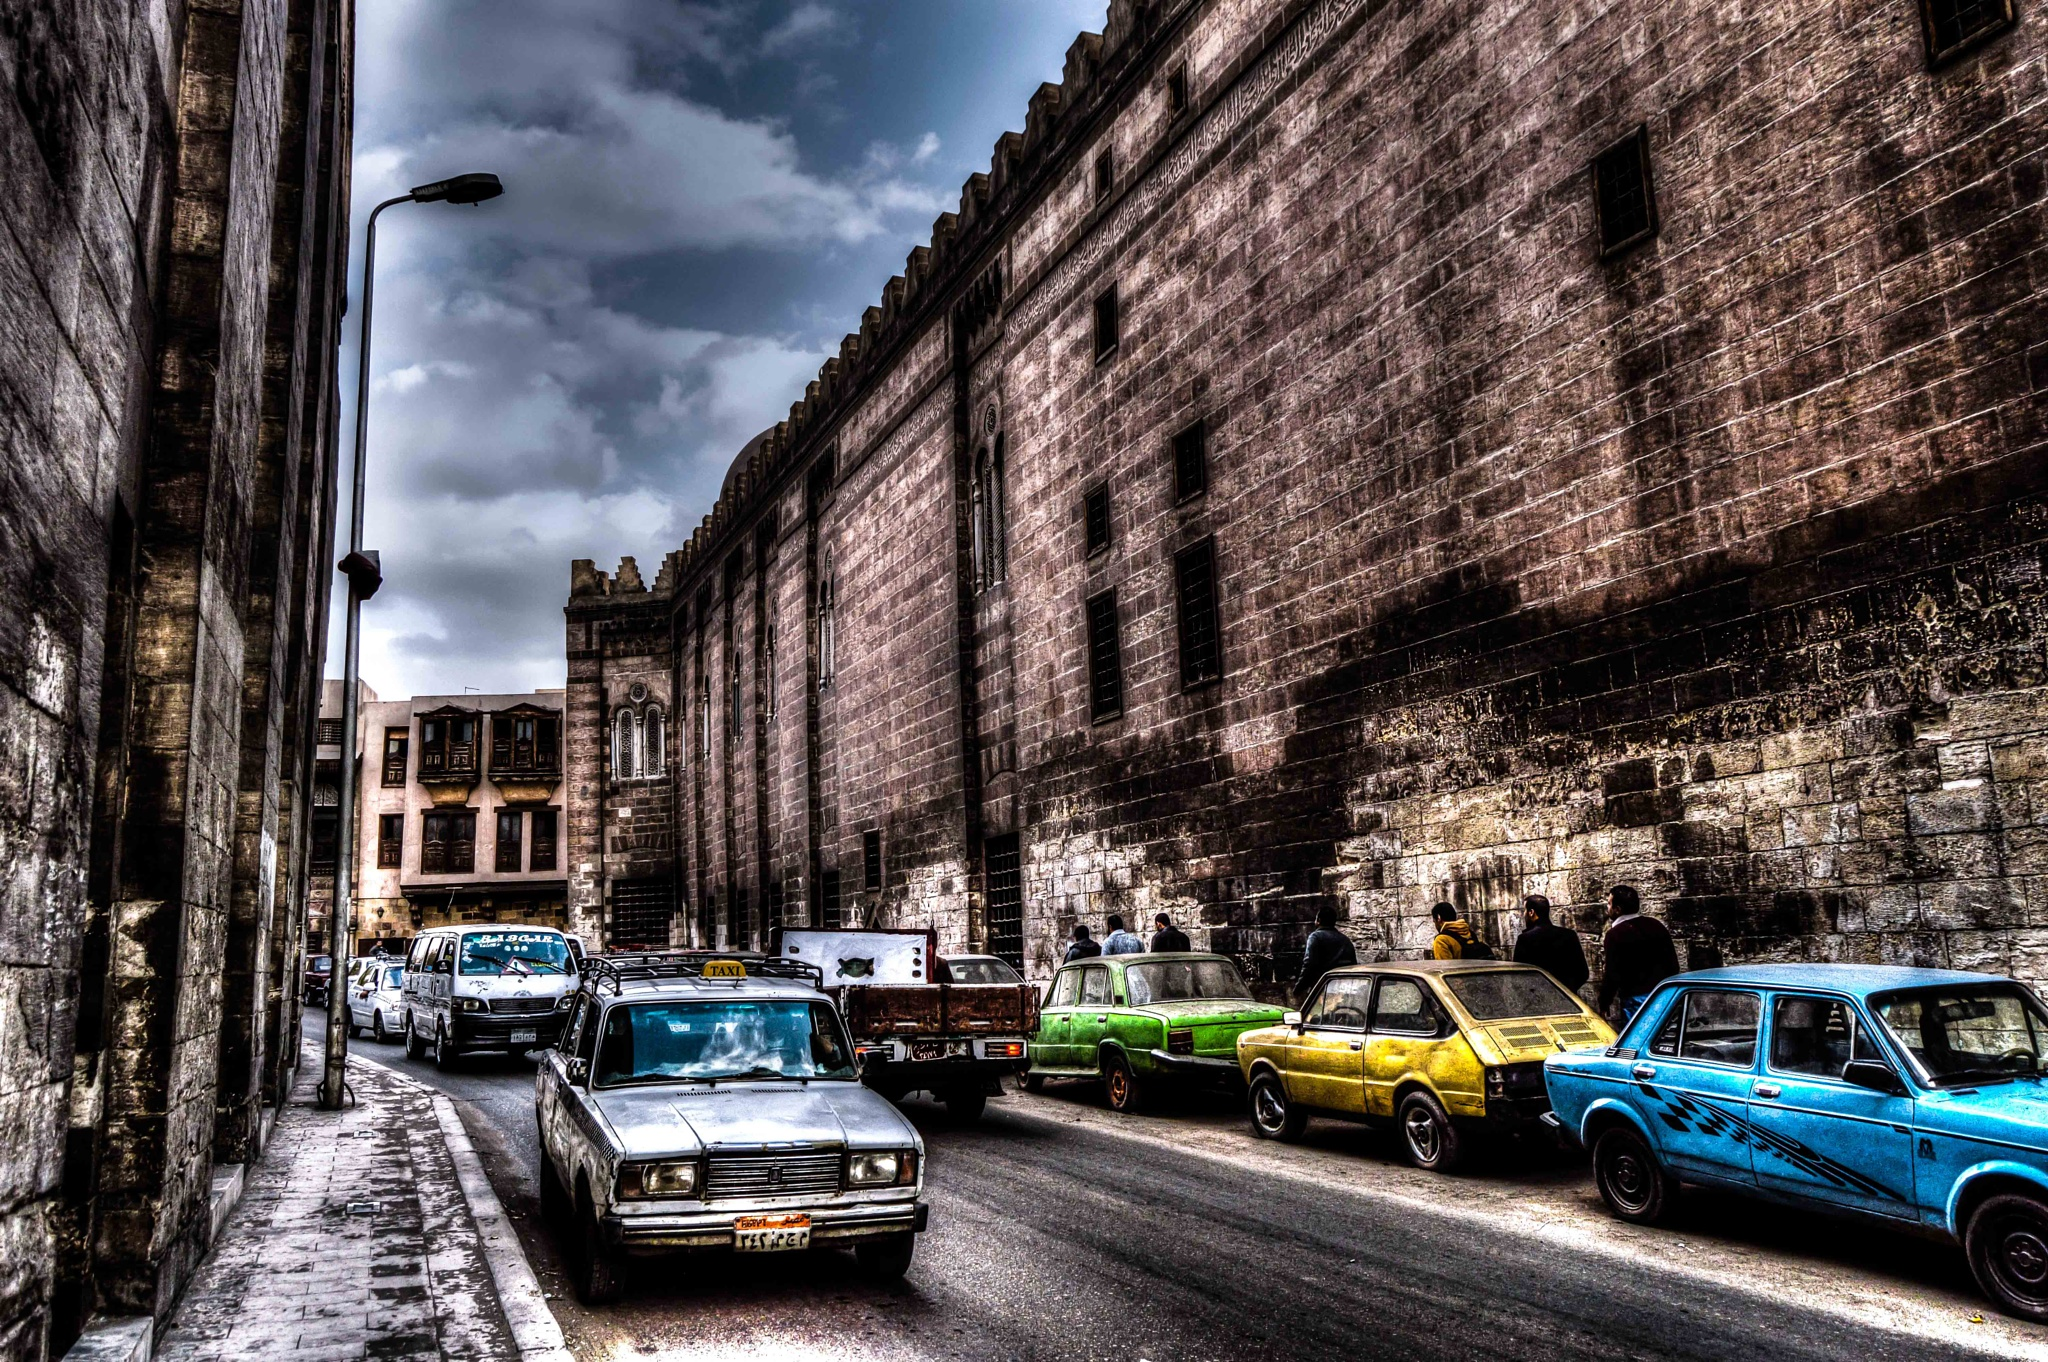 Old Cairo city by Waleed Elmiligy